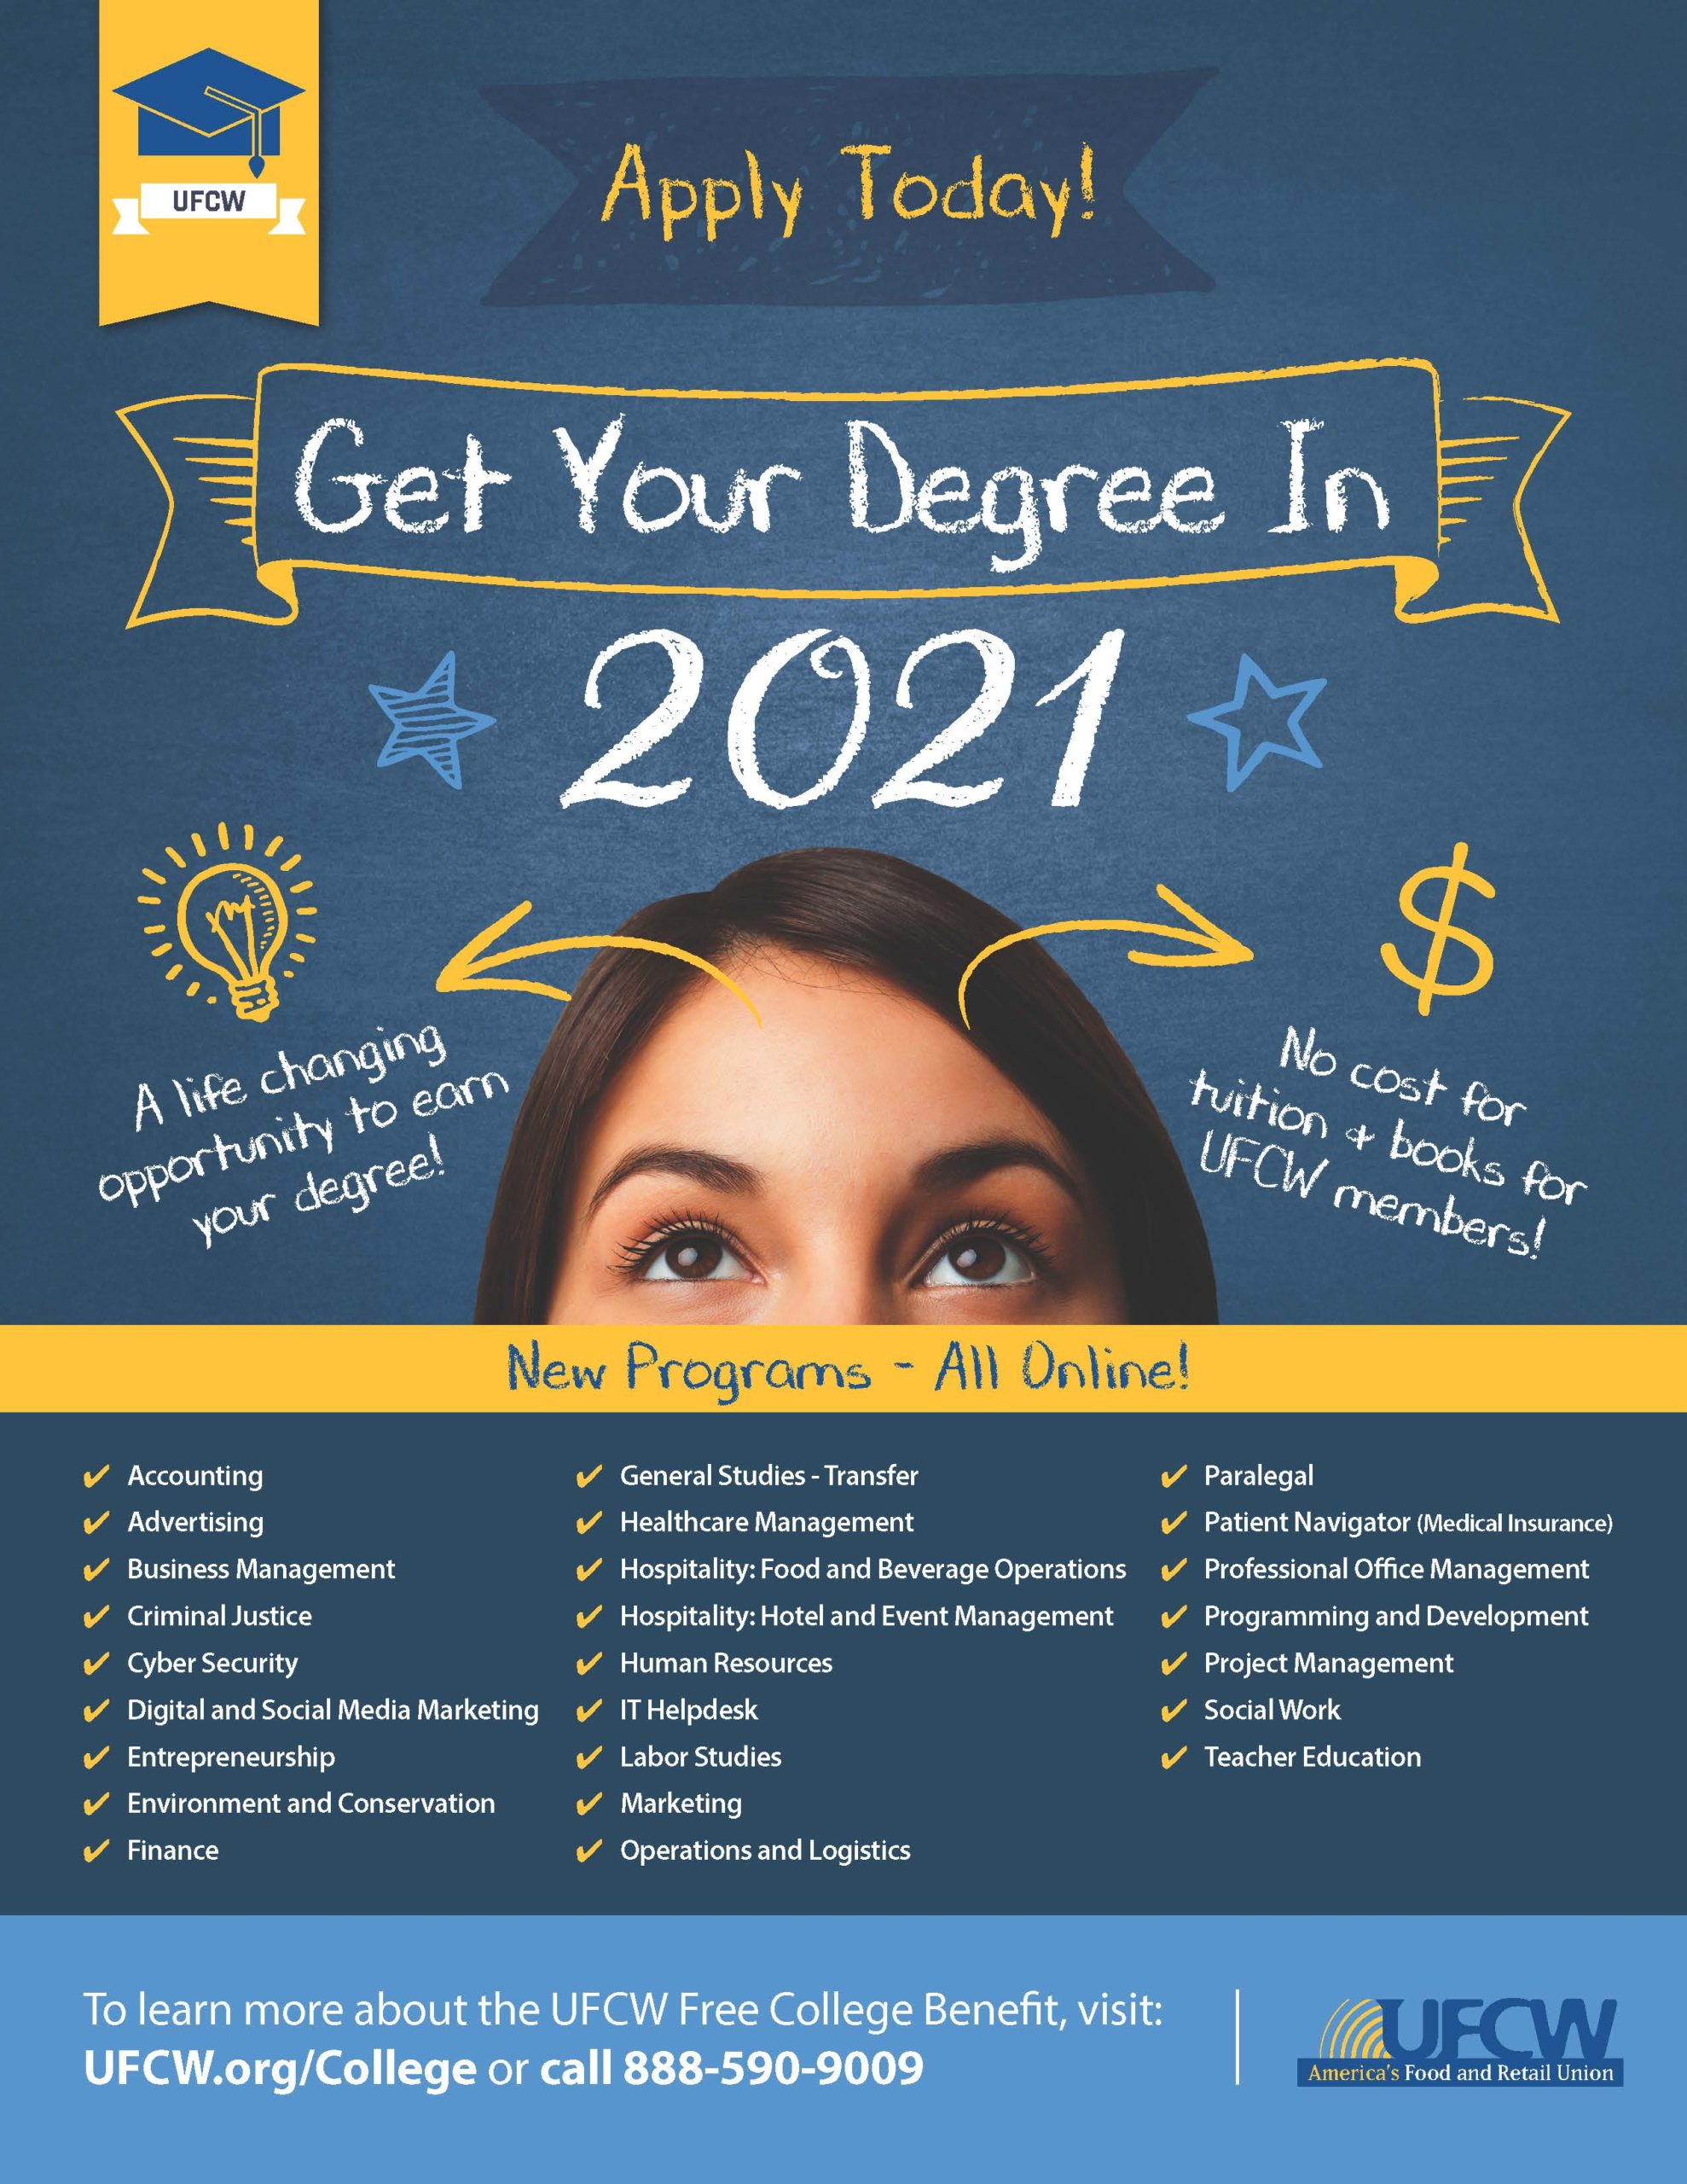 2021 Free College Benefit!